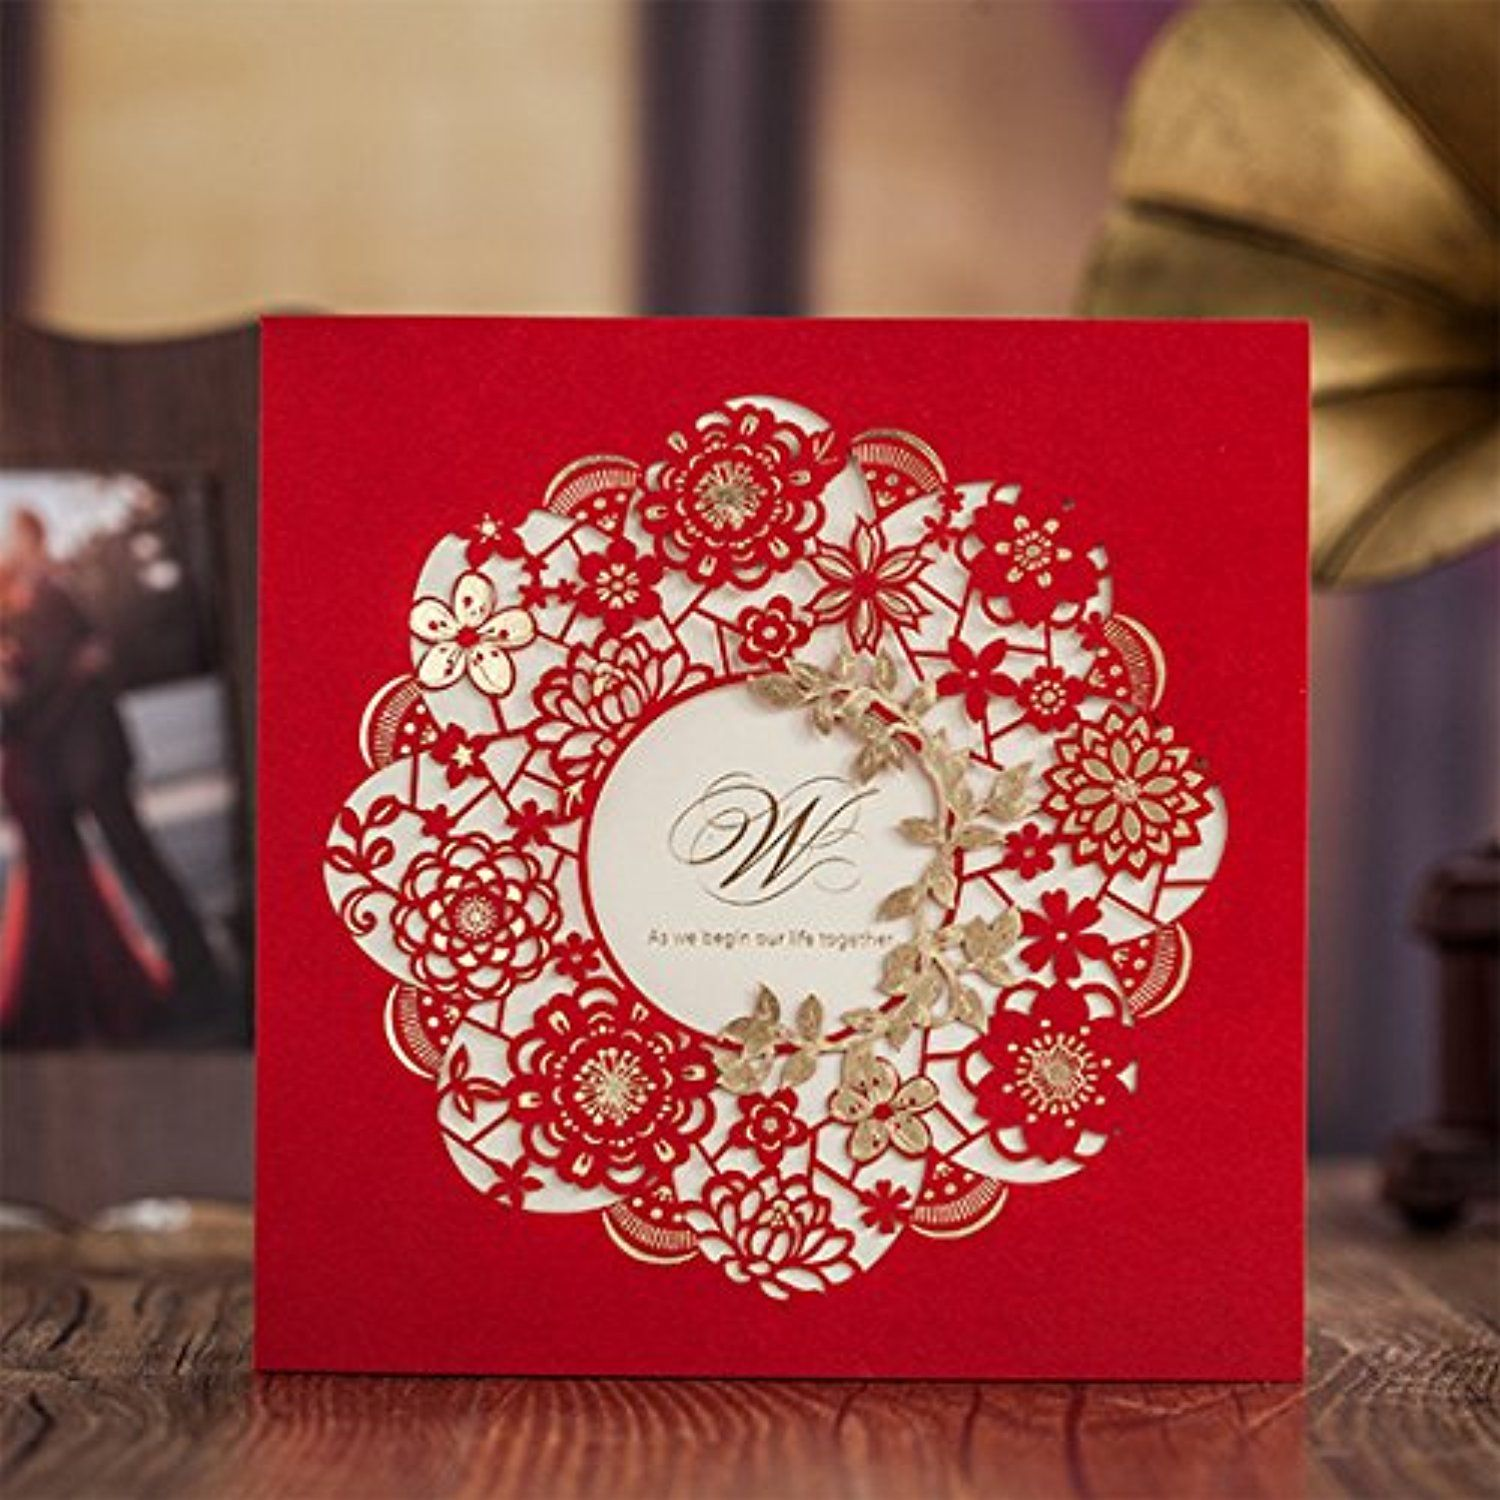 Yufeng 24pcs laser cut hollow out wedding invitations cards kit for yufeng 24pcs laser cut hollow out wedding invitations cards kit for marriage engagement birthday bridal shower stopboris Image collections